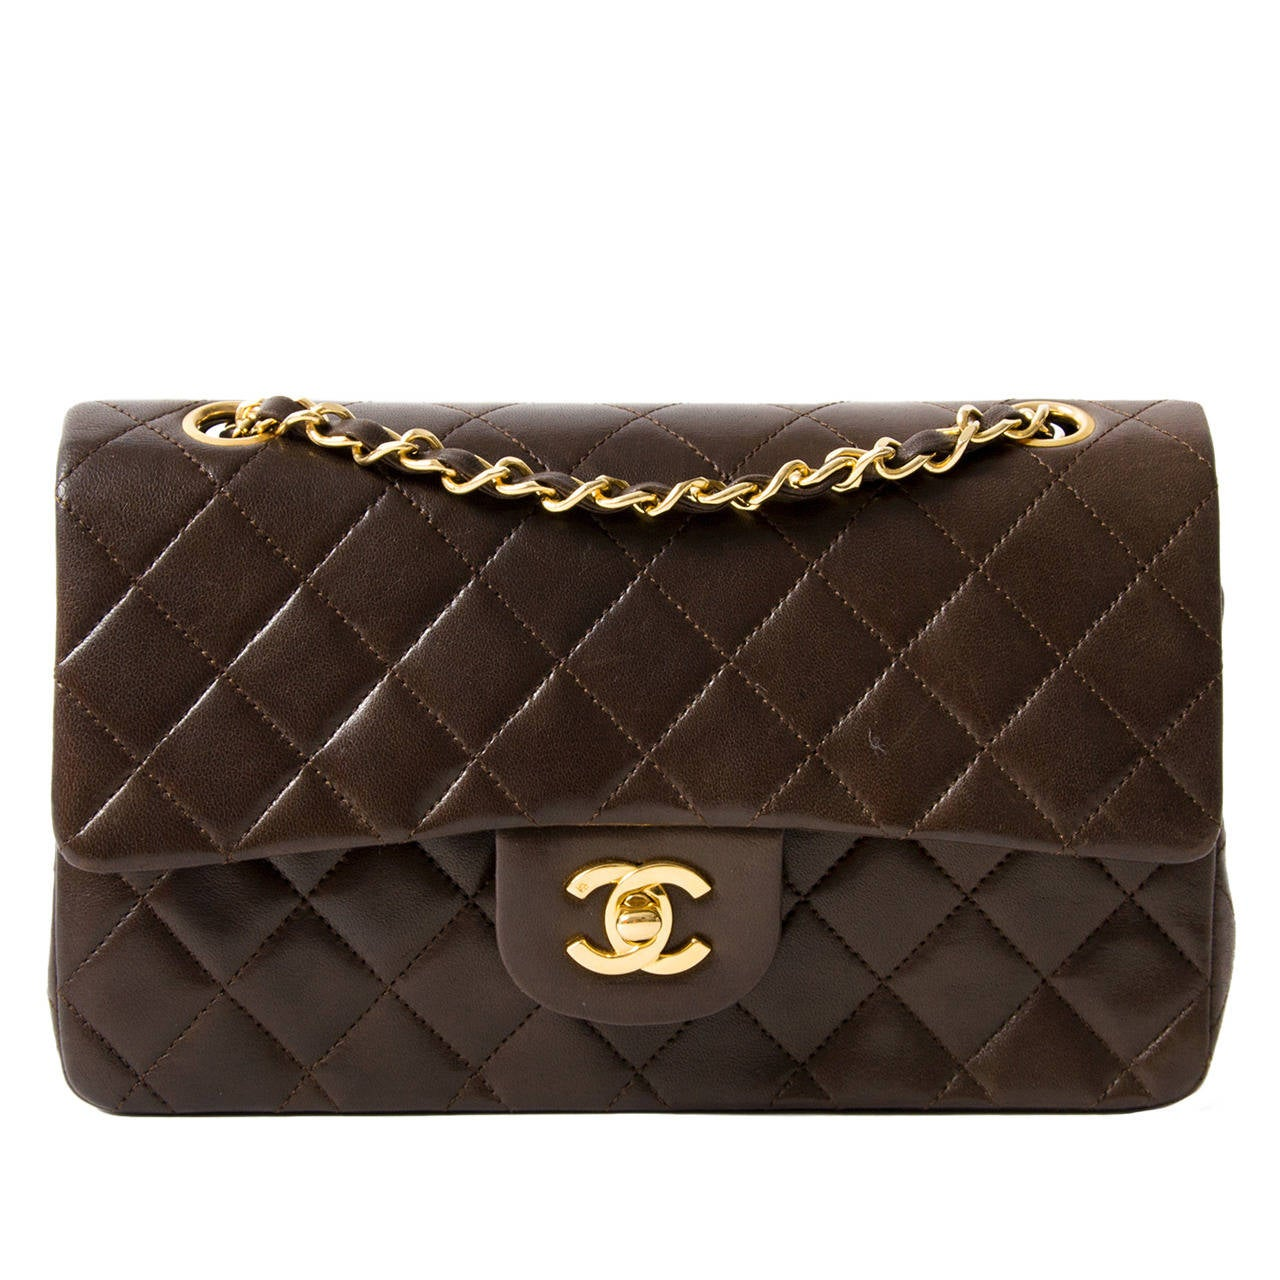 exclusive range superior quality limited guantity Chanel Small Classic Flap Bag in Chocolate Brown GHW at 1stdibs